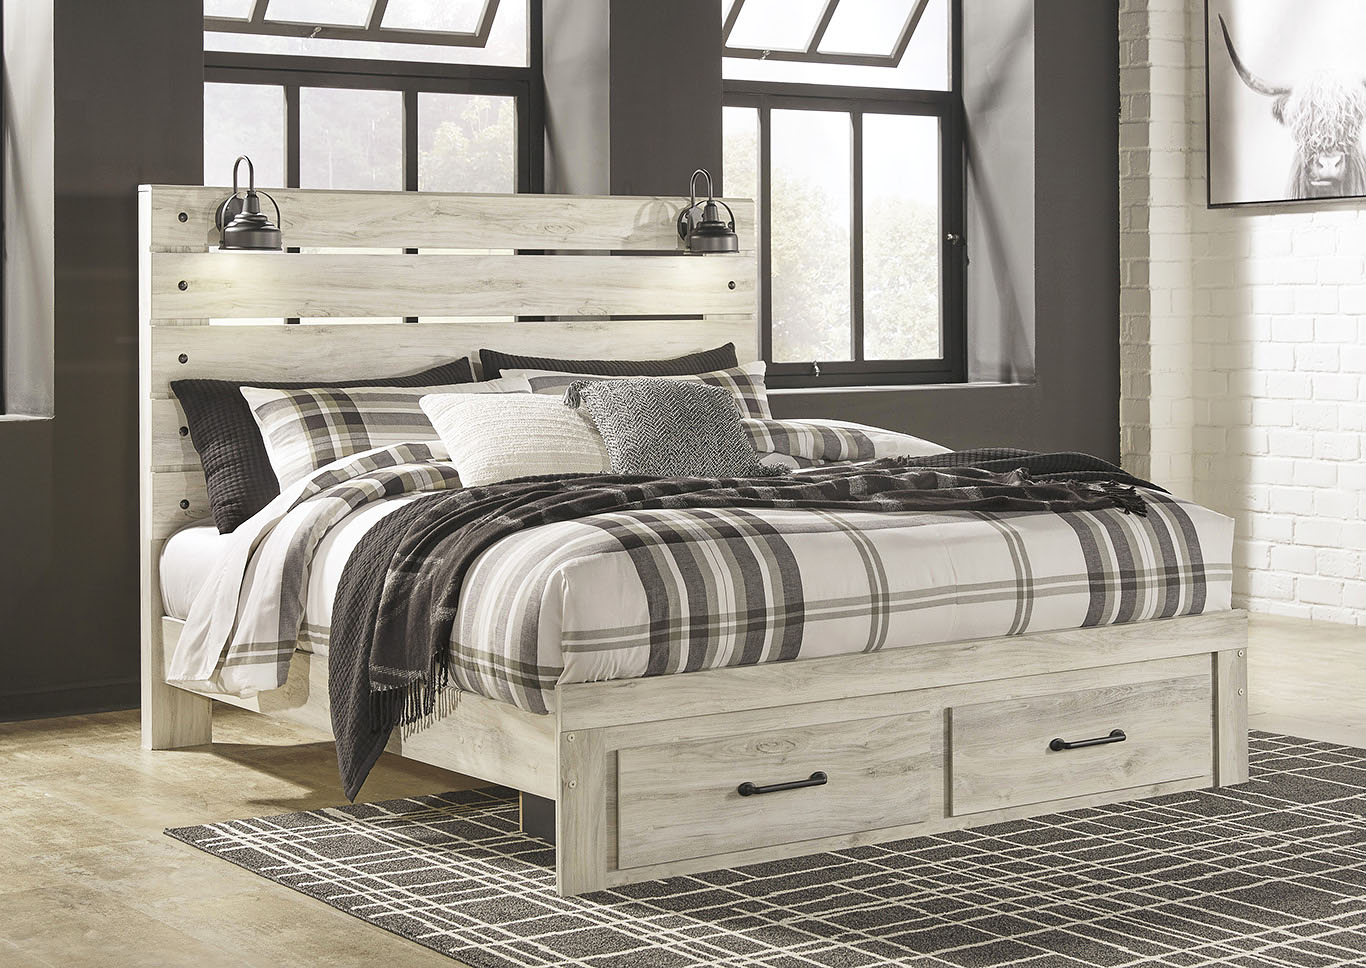 Cambeck King Panel Bed with 5 Storage Drawers Jarons